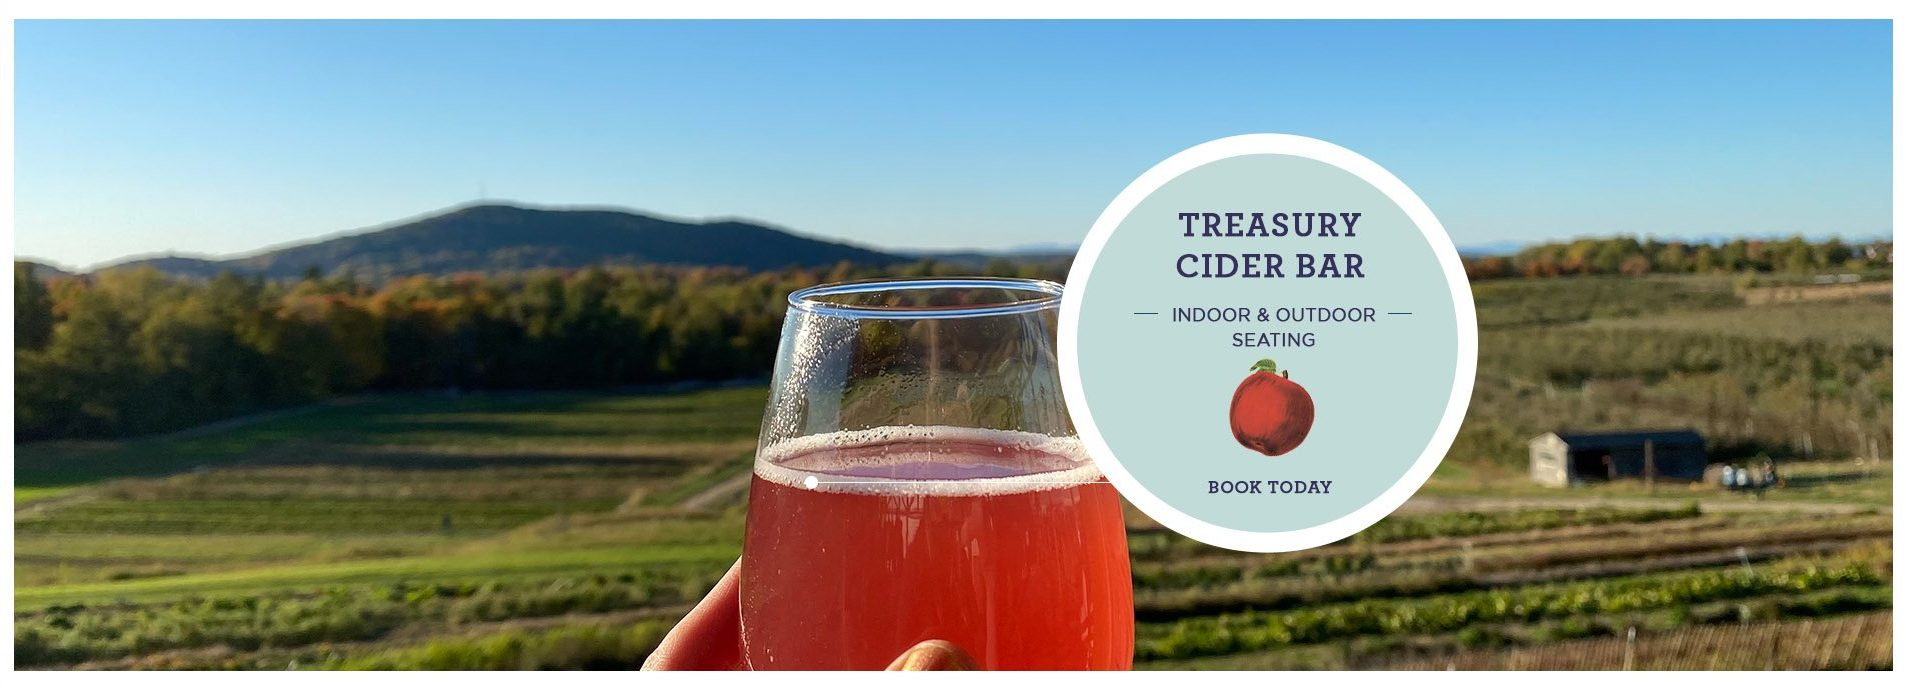 Treasury Cider Bar. Indoor & Outdoor Seating Available. Click to book a reservation.